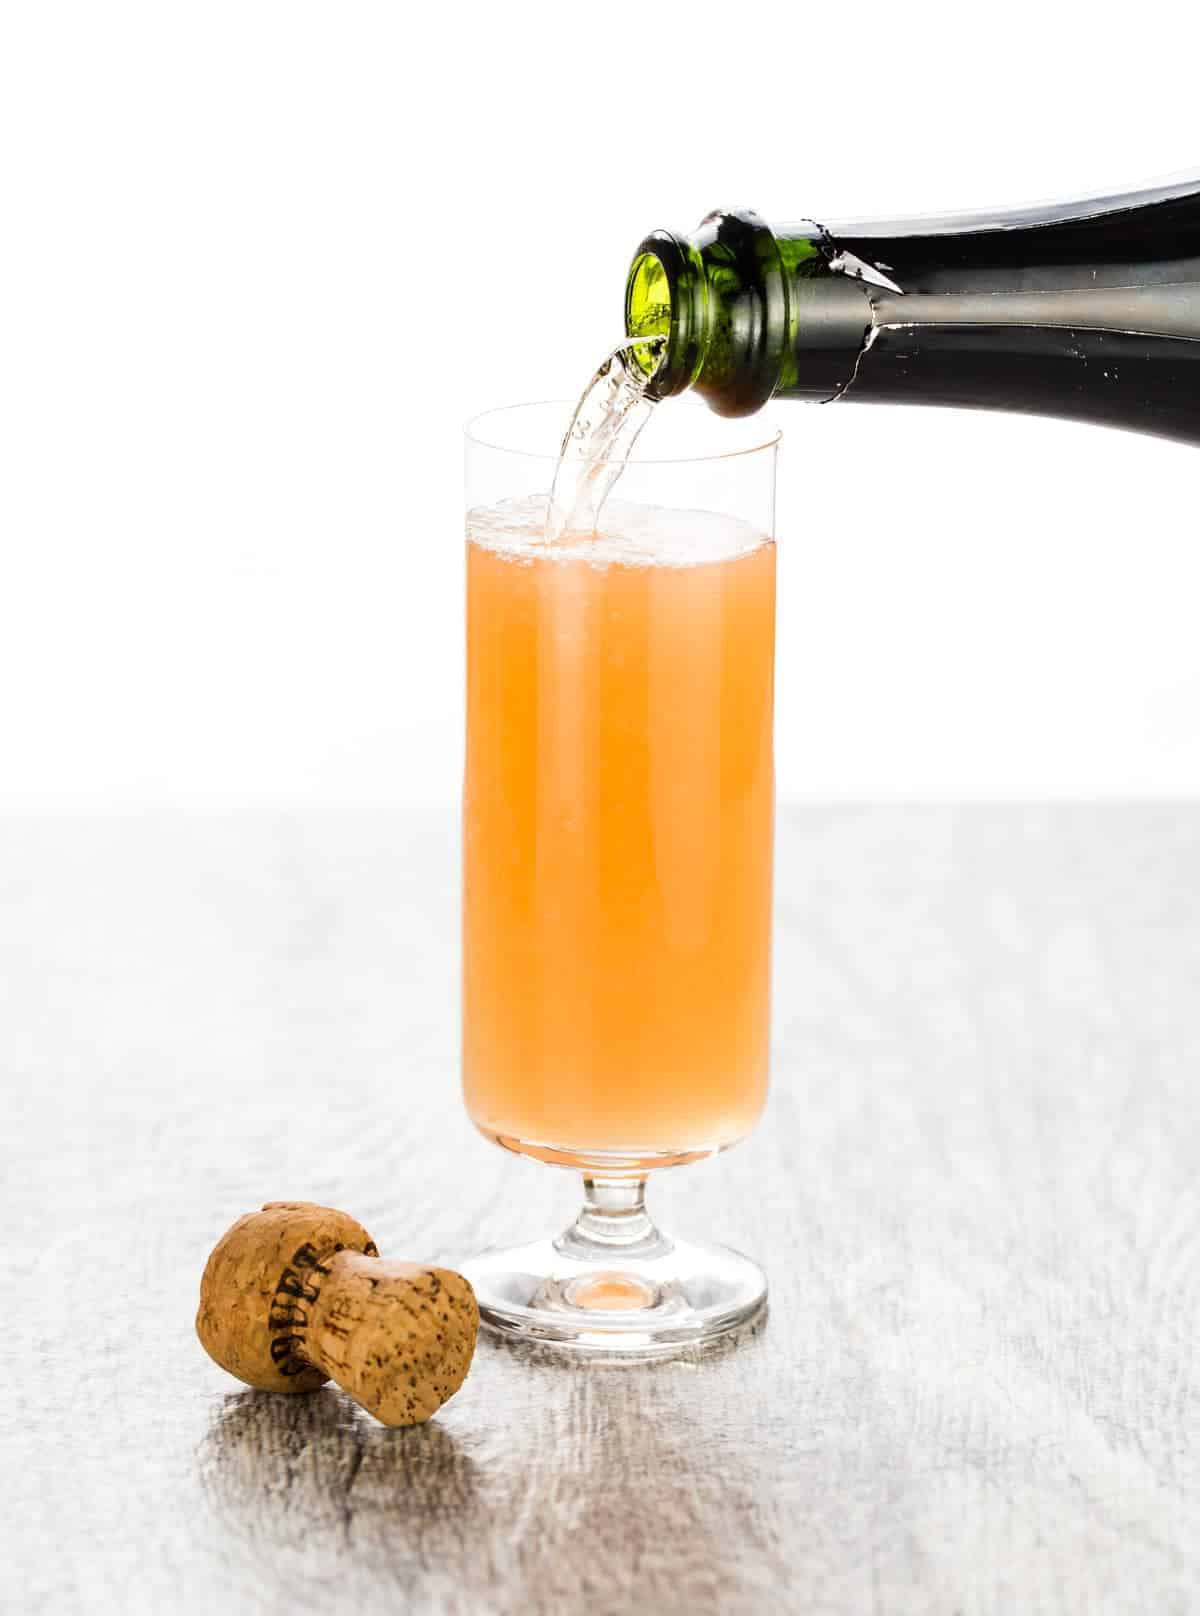 Hosting Sunday brunch soon? This Mexican Mimosa is my new go to brunch cocktail. Tequila is the secret ingredient that sets this mimosa apart from the rest.